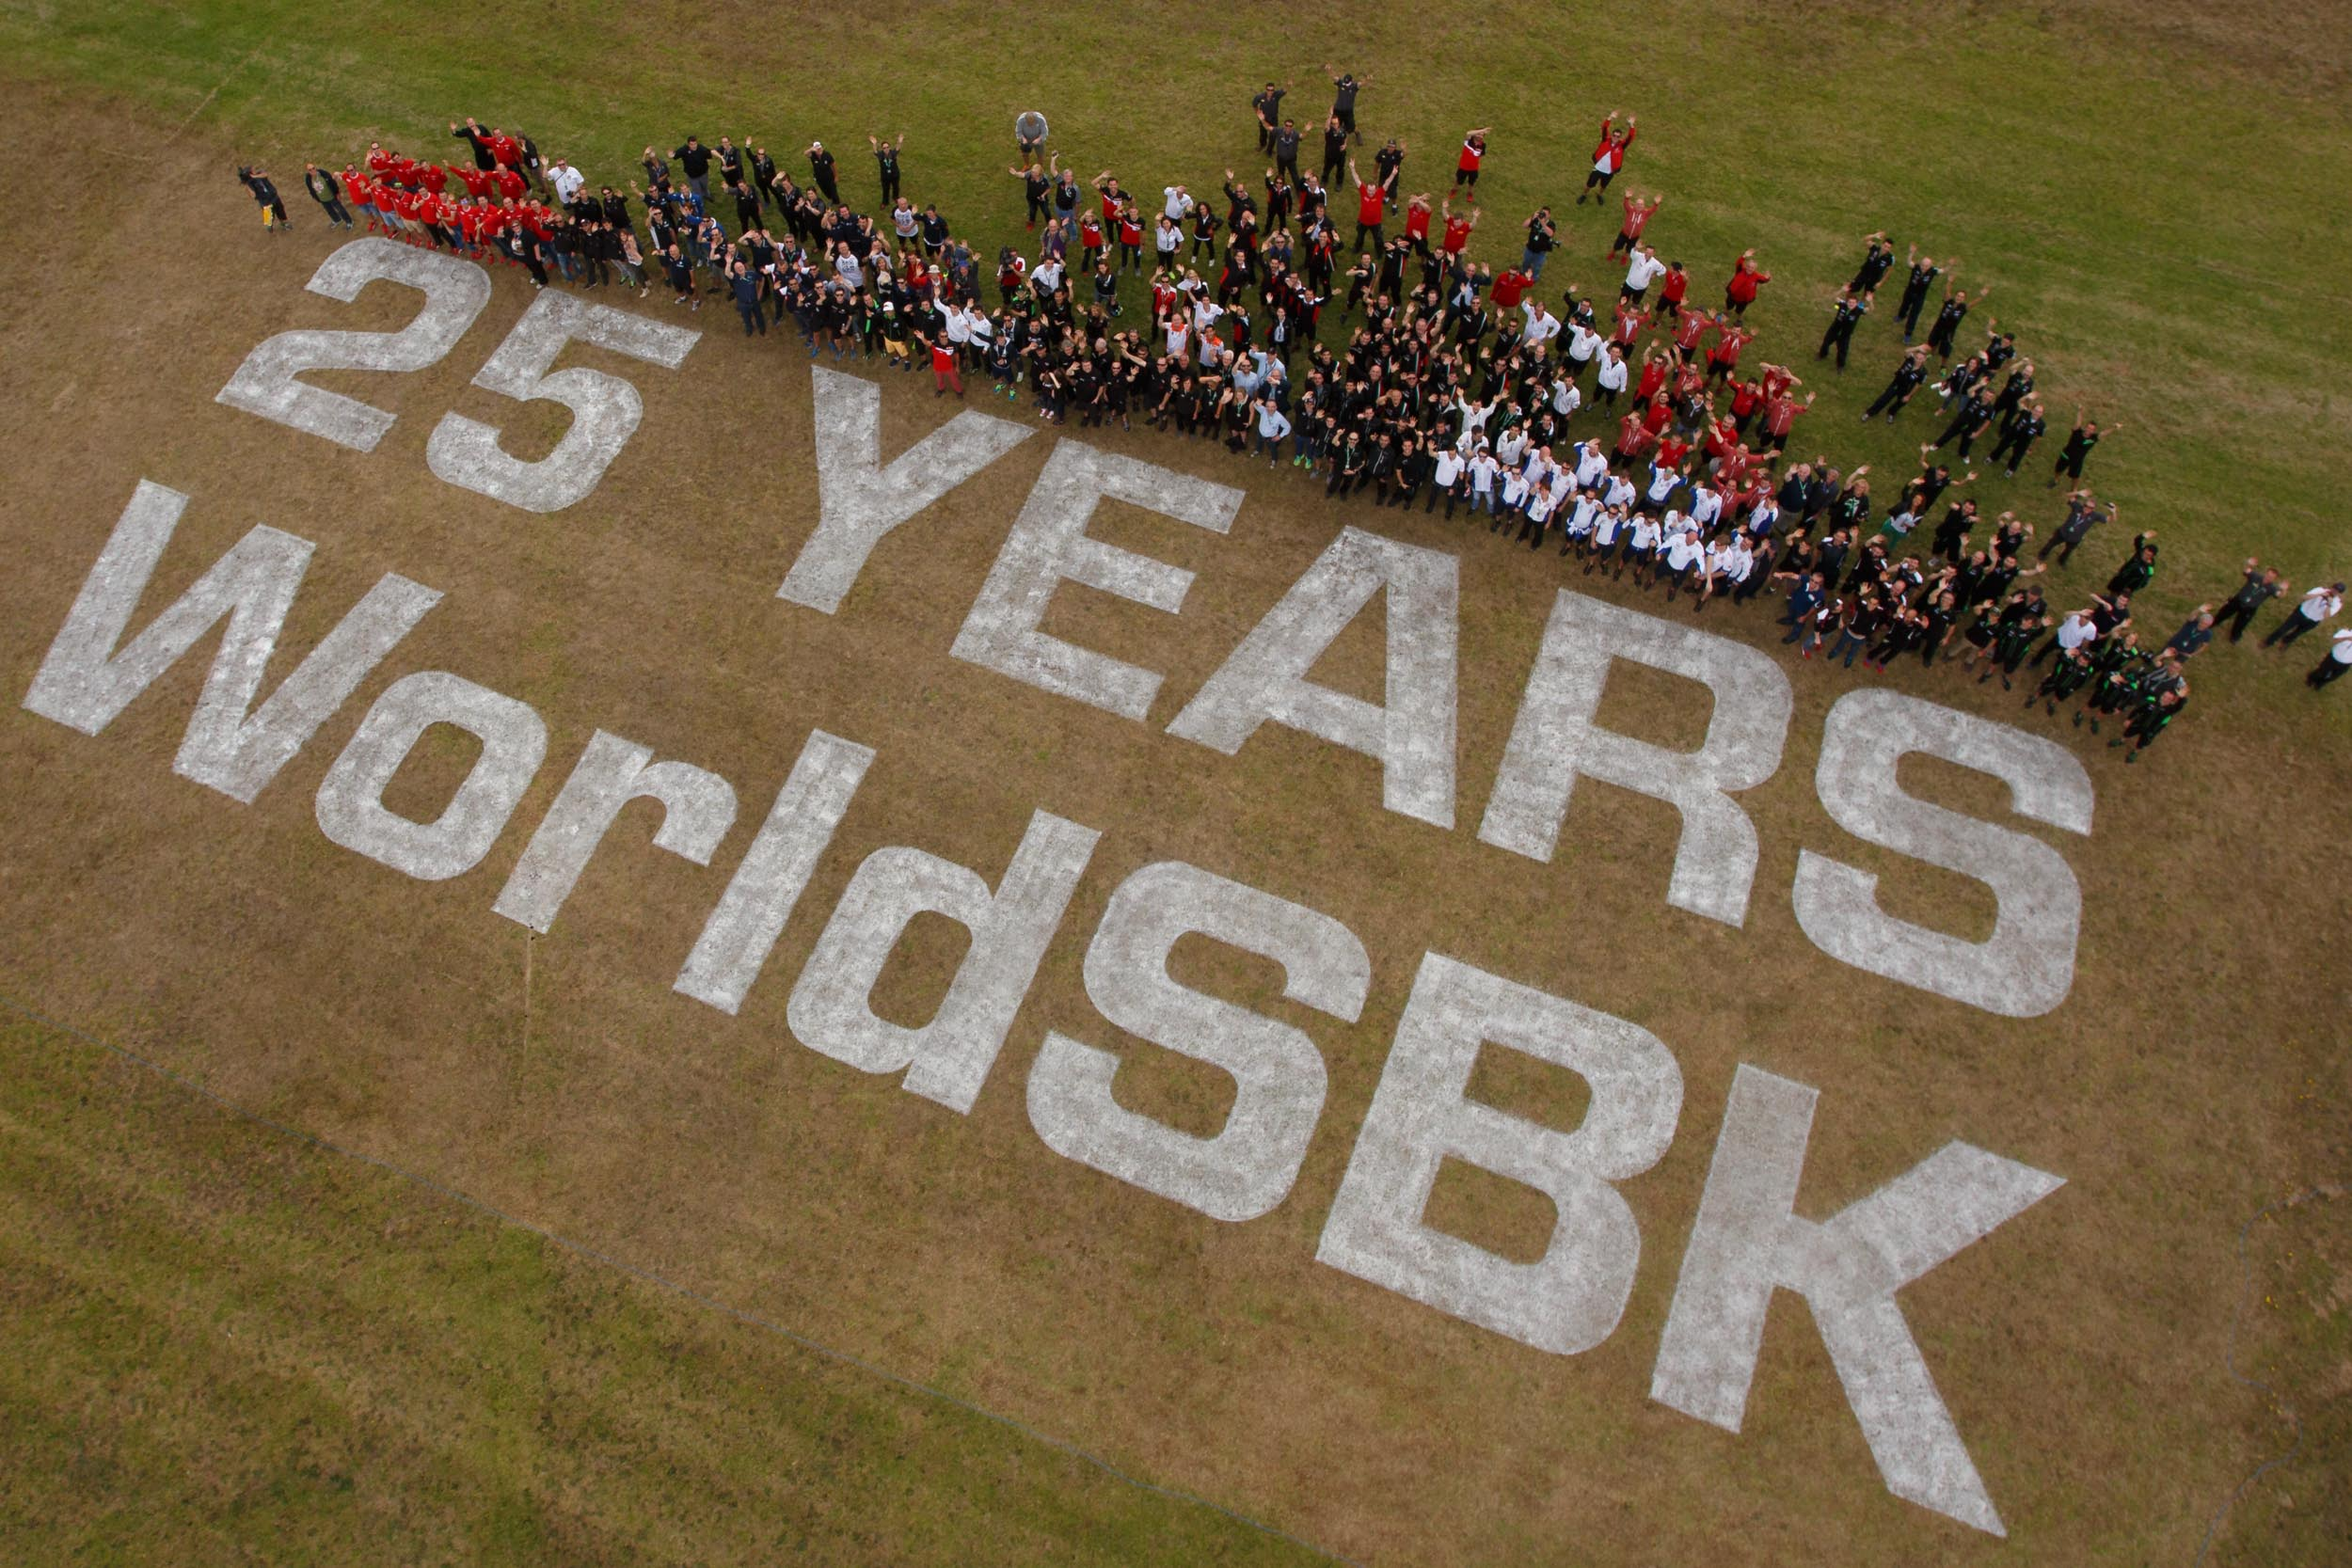 25 years of World Superbike at Phillip Island